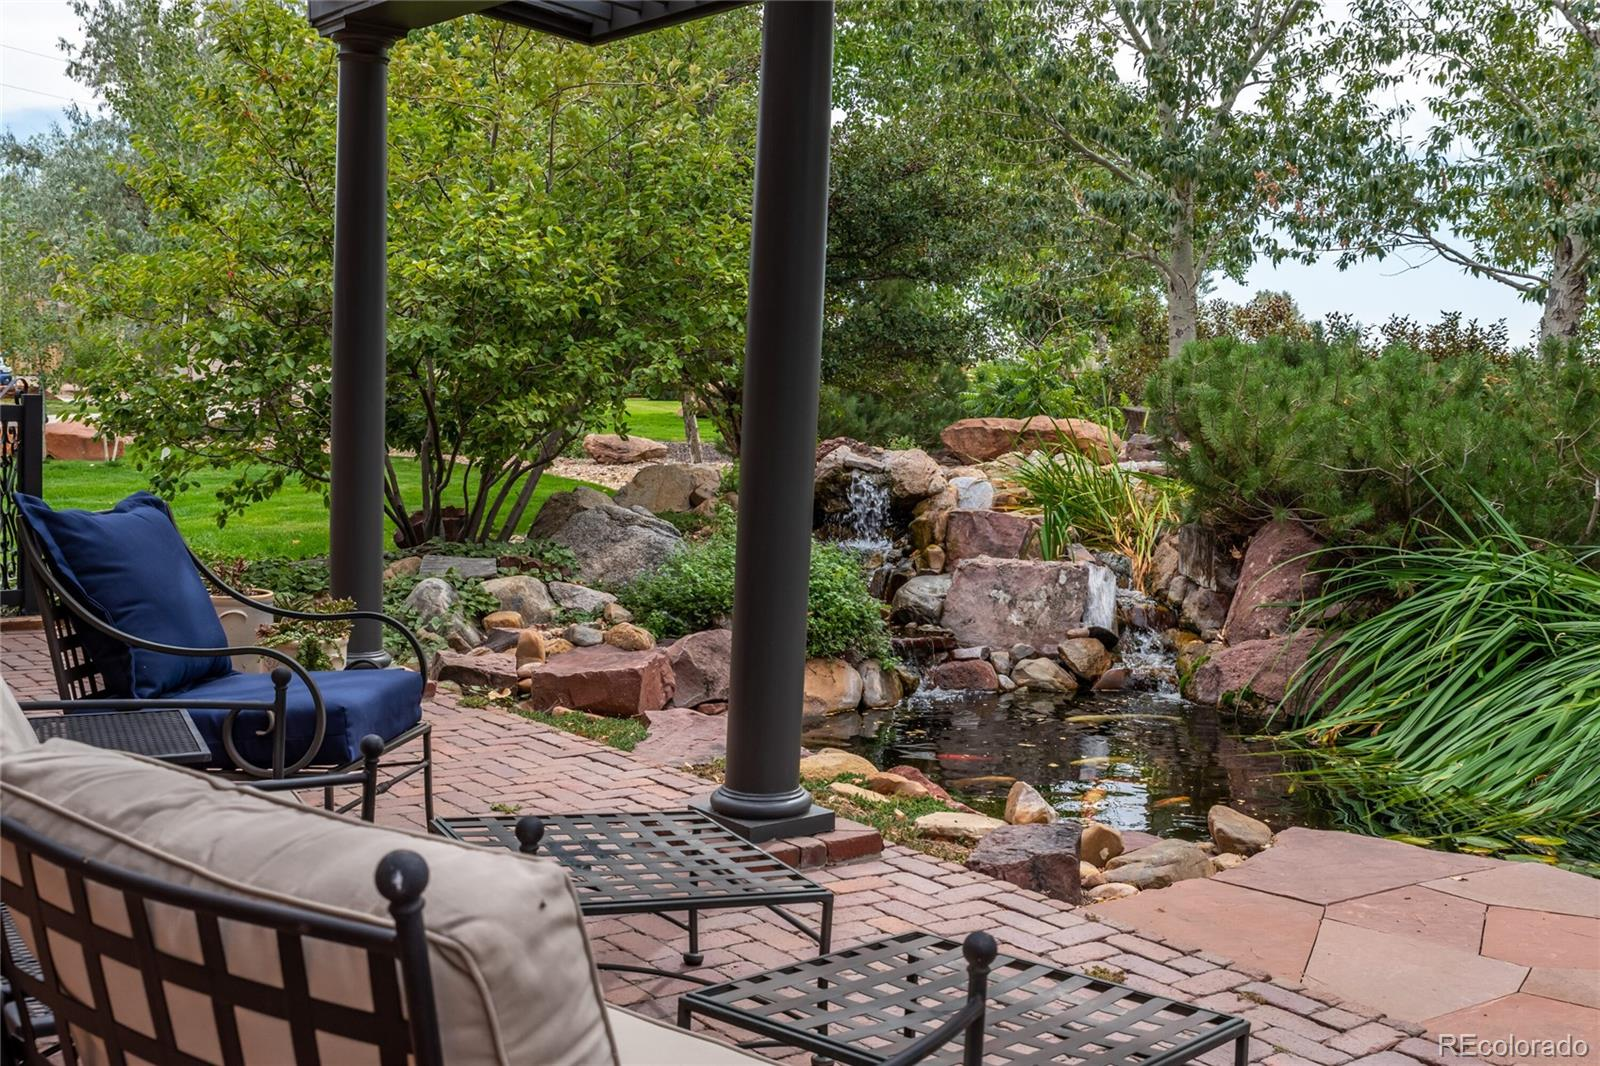 Water Feature with Koi Pond